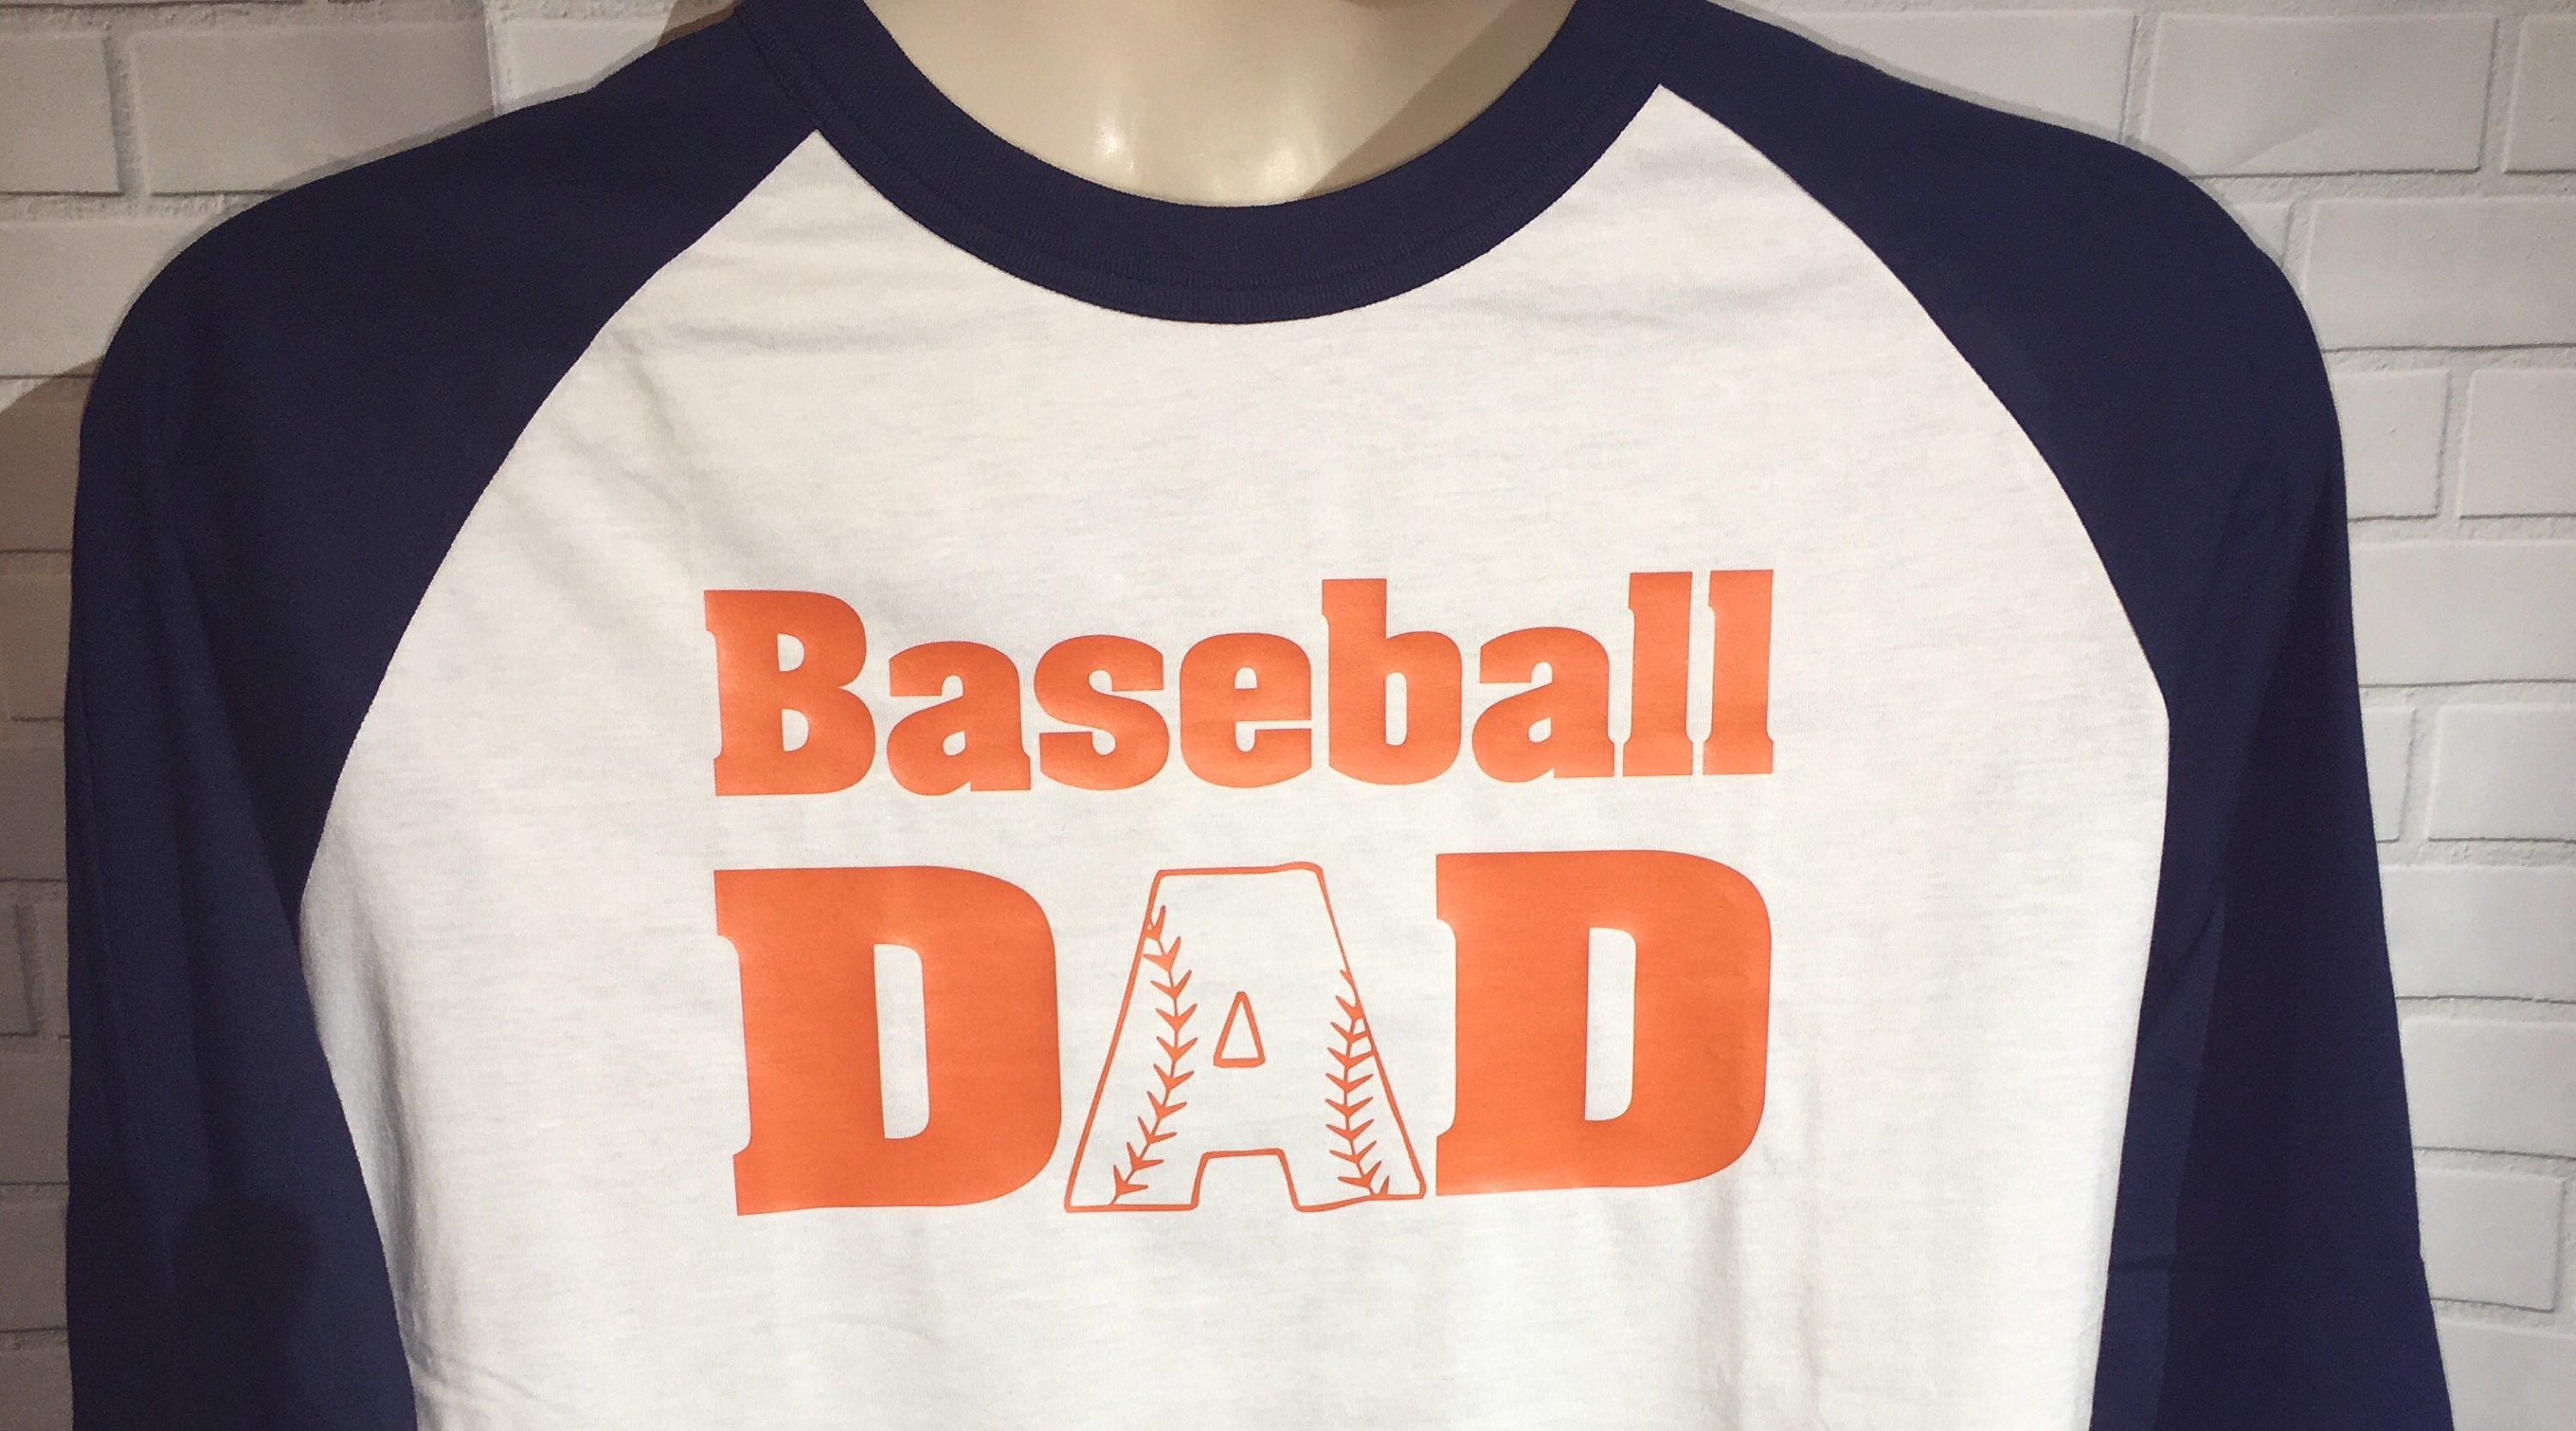 f5ae07a0d Baseball Dad Shirt, Baseball Dad Raglan, Shirts for Dad, Dad Sport Shirt,  Custom Baseball Dad Shirt, Gift for Dad, Baller Dad Shirt